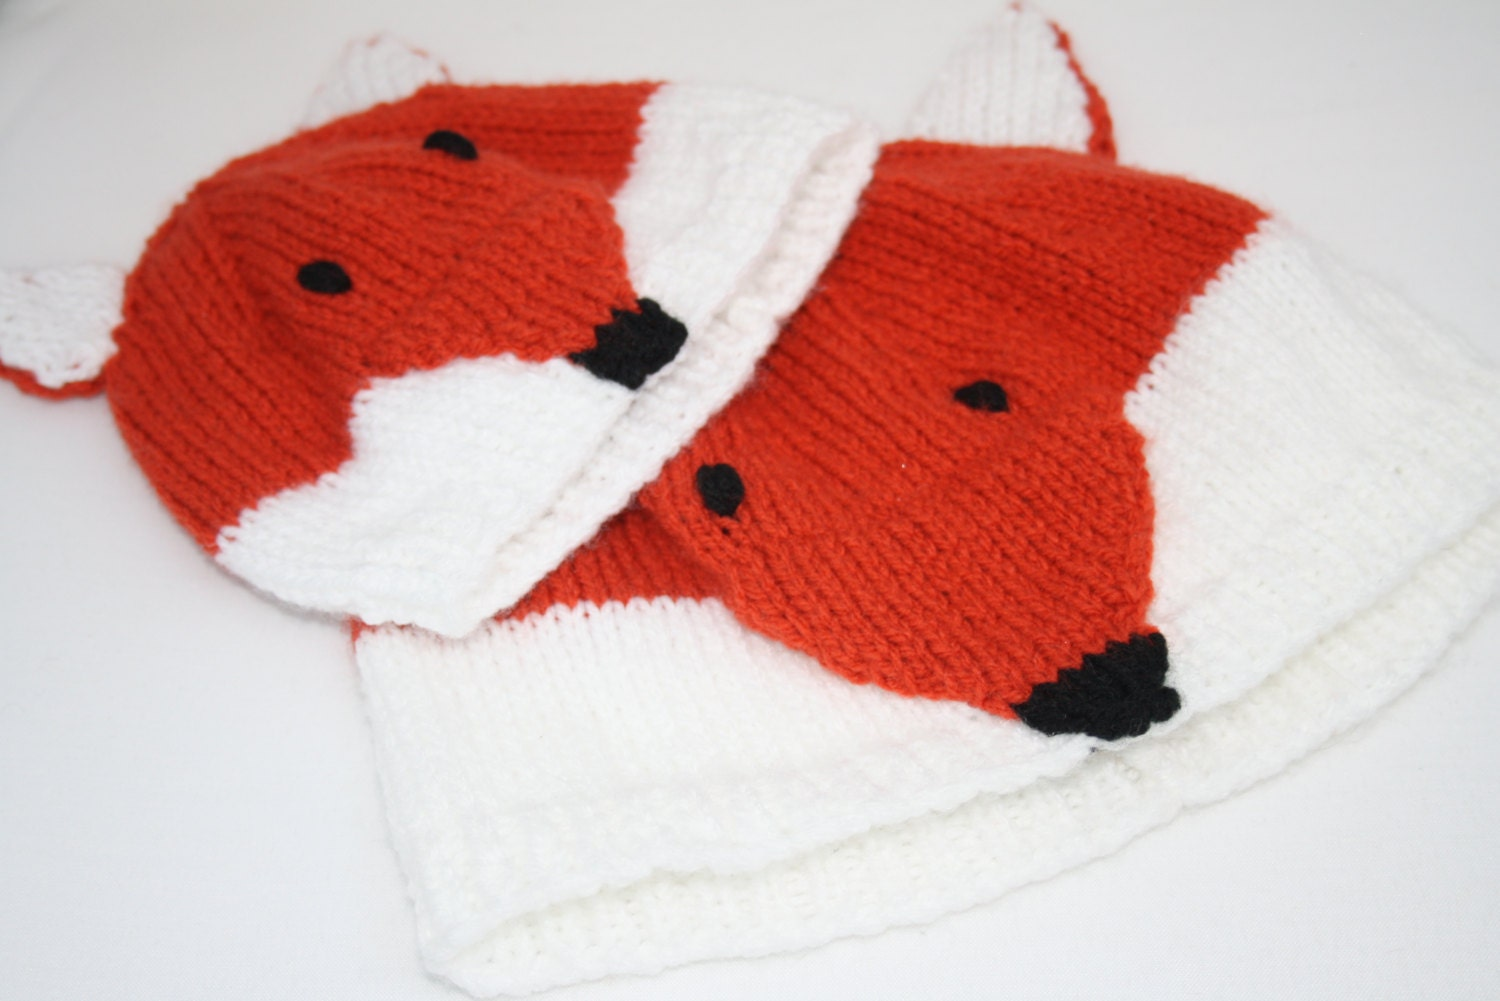 Knitting Pattern For Fox Hat : Knitted Fox Hat Knitted Fox Hat for Mom Adult Fox Hat Knitted